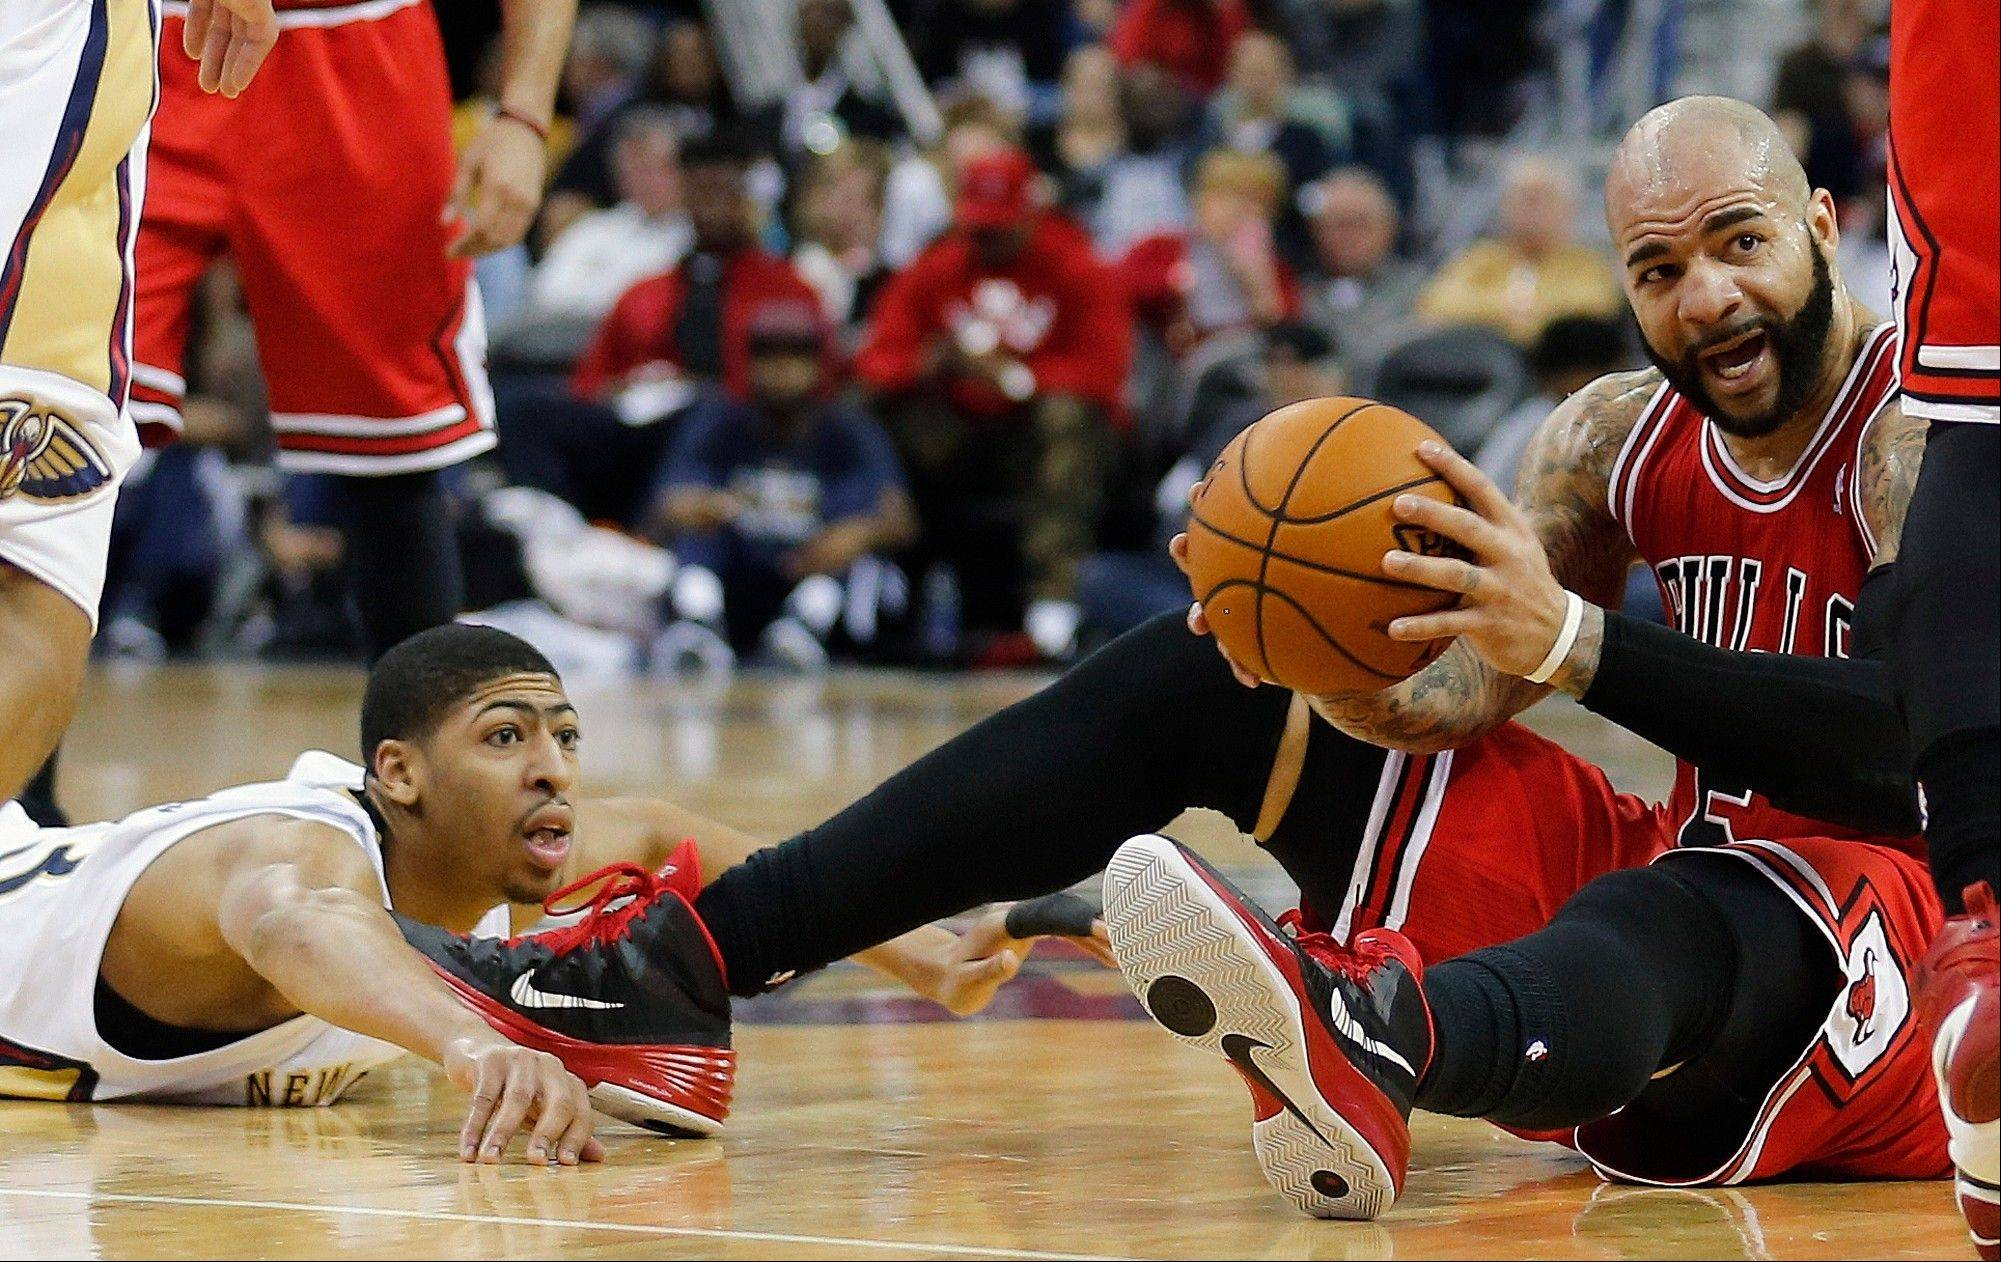 Bulls forward Carlos Boozer grabs a loose ball in front of New Orleans Pelicans forward Anthony Davis during the second half of an NBA basketball game in New Orleans, Saturday, Feb. 1, 2014. The Pelicans defeated the Bulls 88-79.